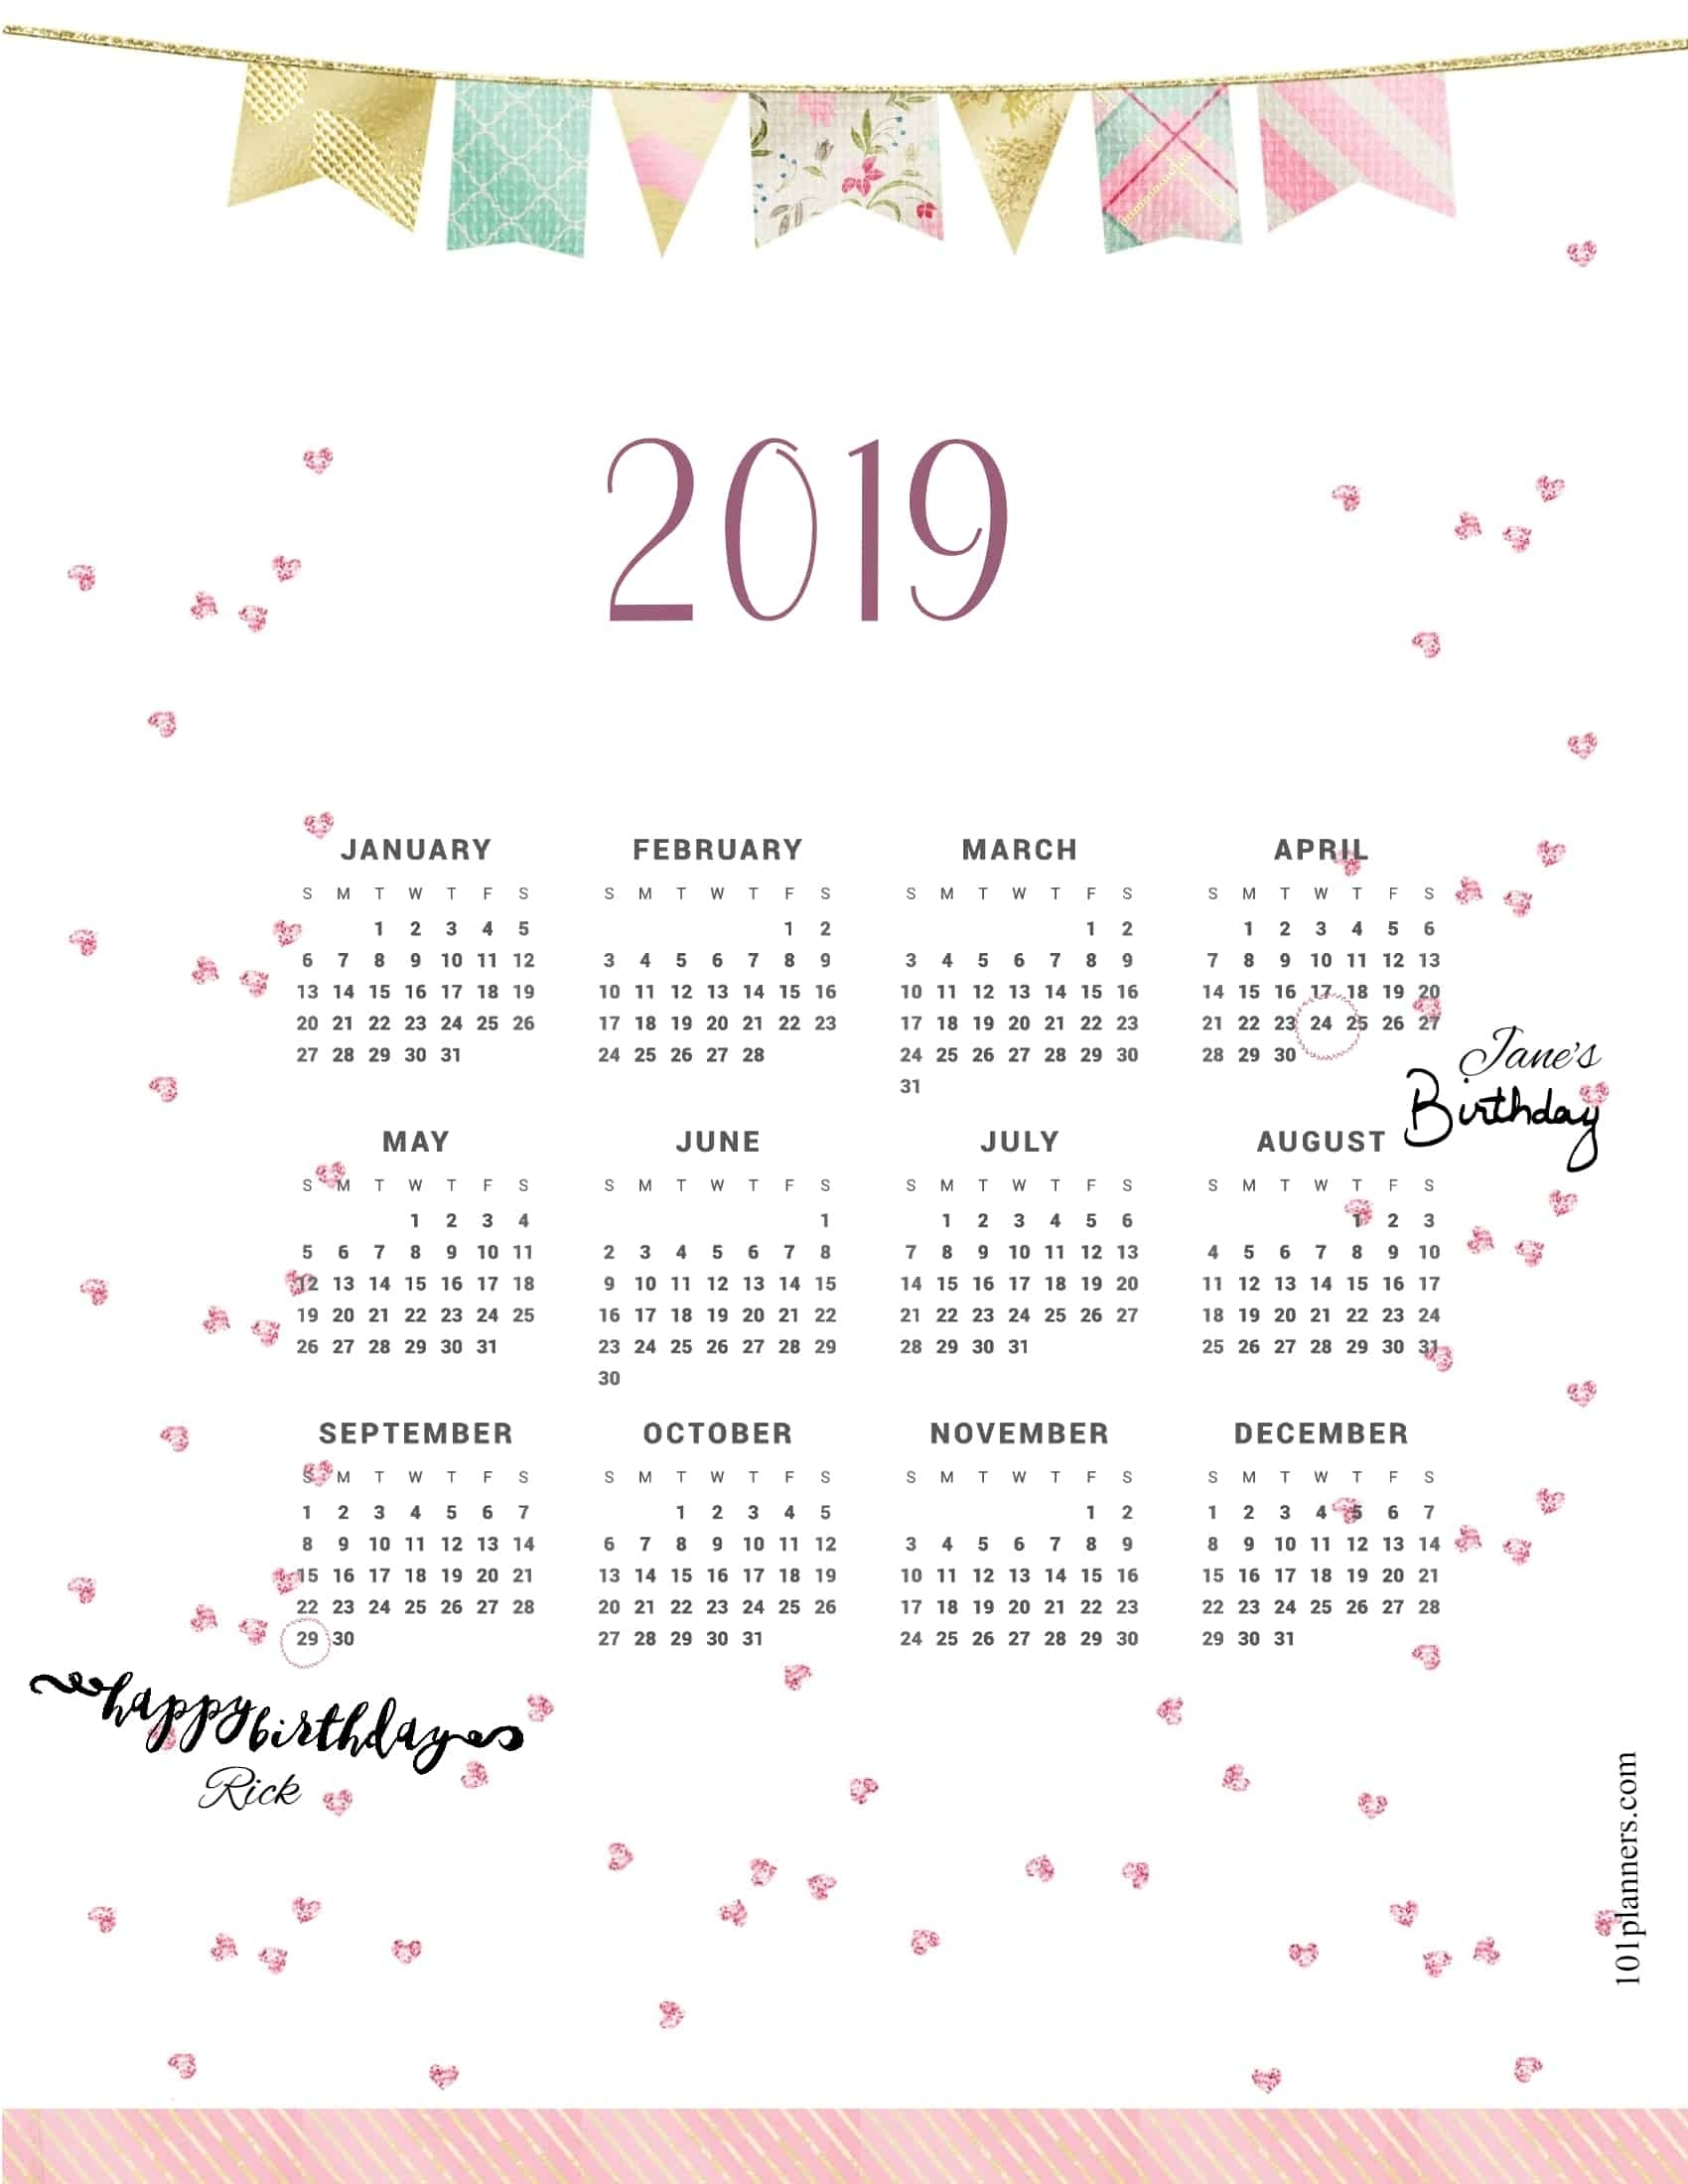 2019 Calendar regarding Printable 2020 Calender At A Glance